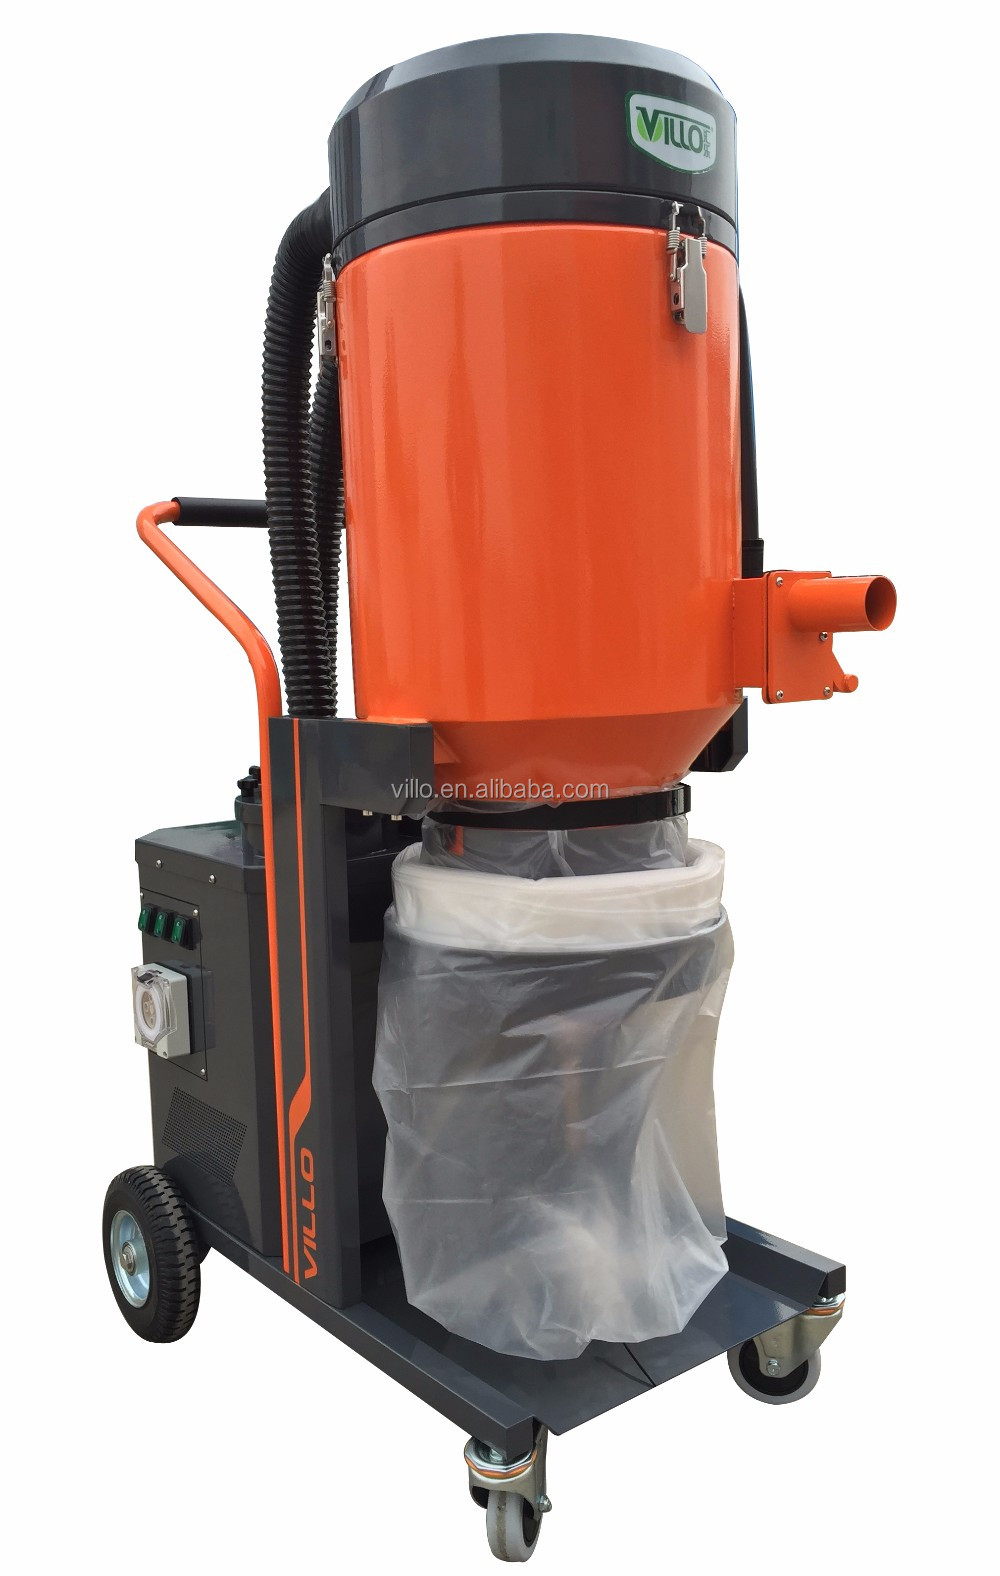 High Quality Single-phase Concrete Vacuums with HEPA 13 Filter and Anti-static Hoses